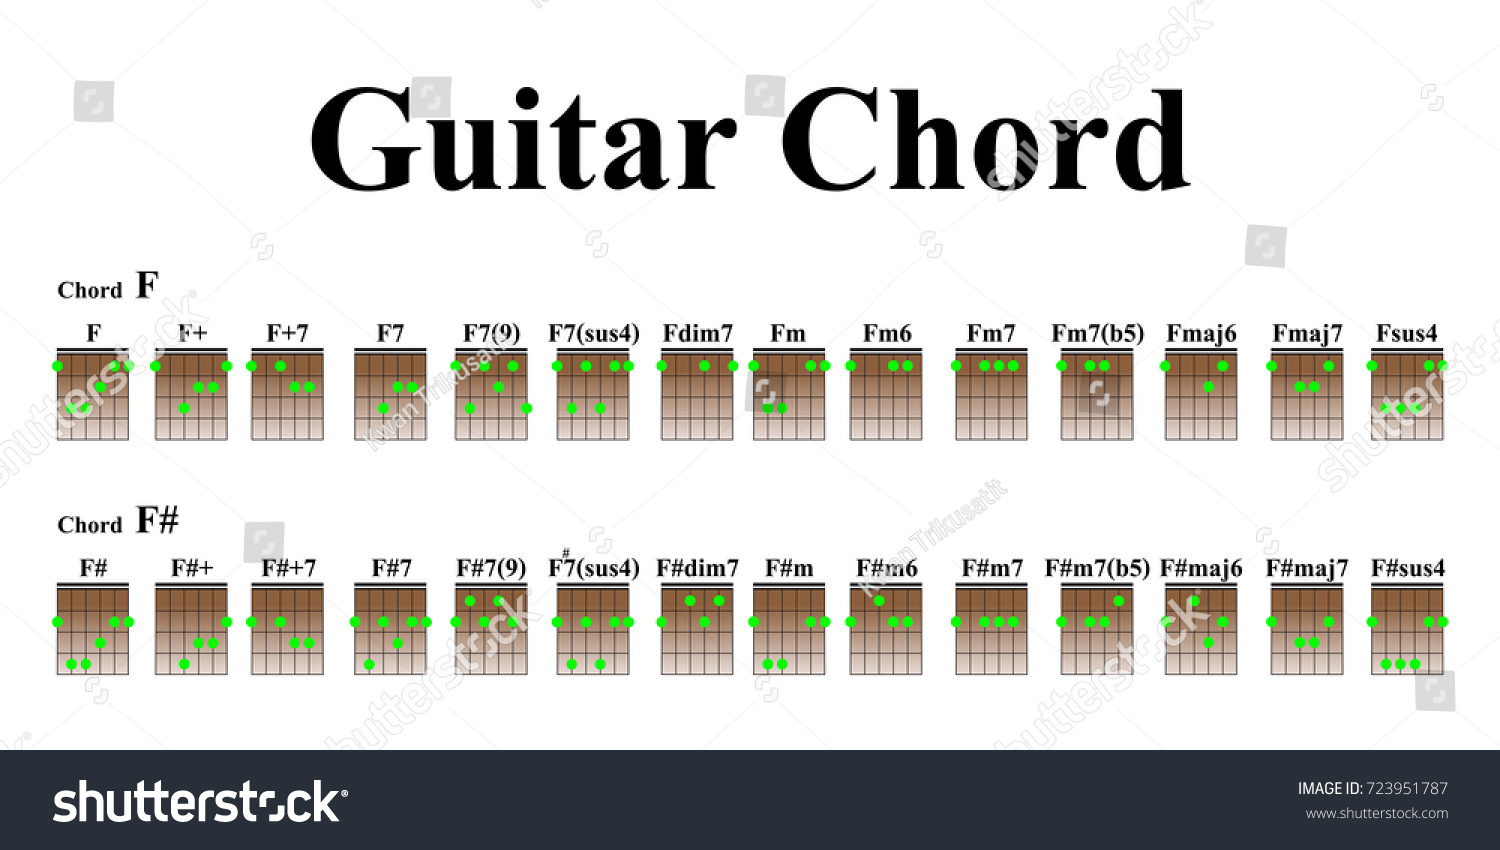 F 7 9 guitar chord choice image guitar chords examples guitar chords beginners stock vector 723951787 shutterstock guitar chords for beginners fatherlandz choice image hexwebz Gallery